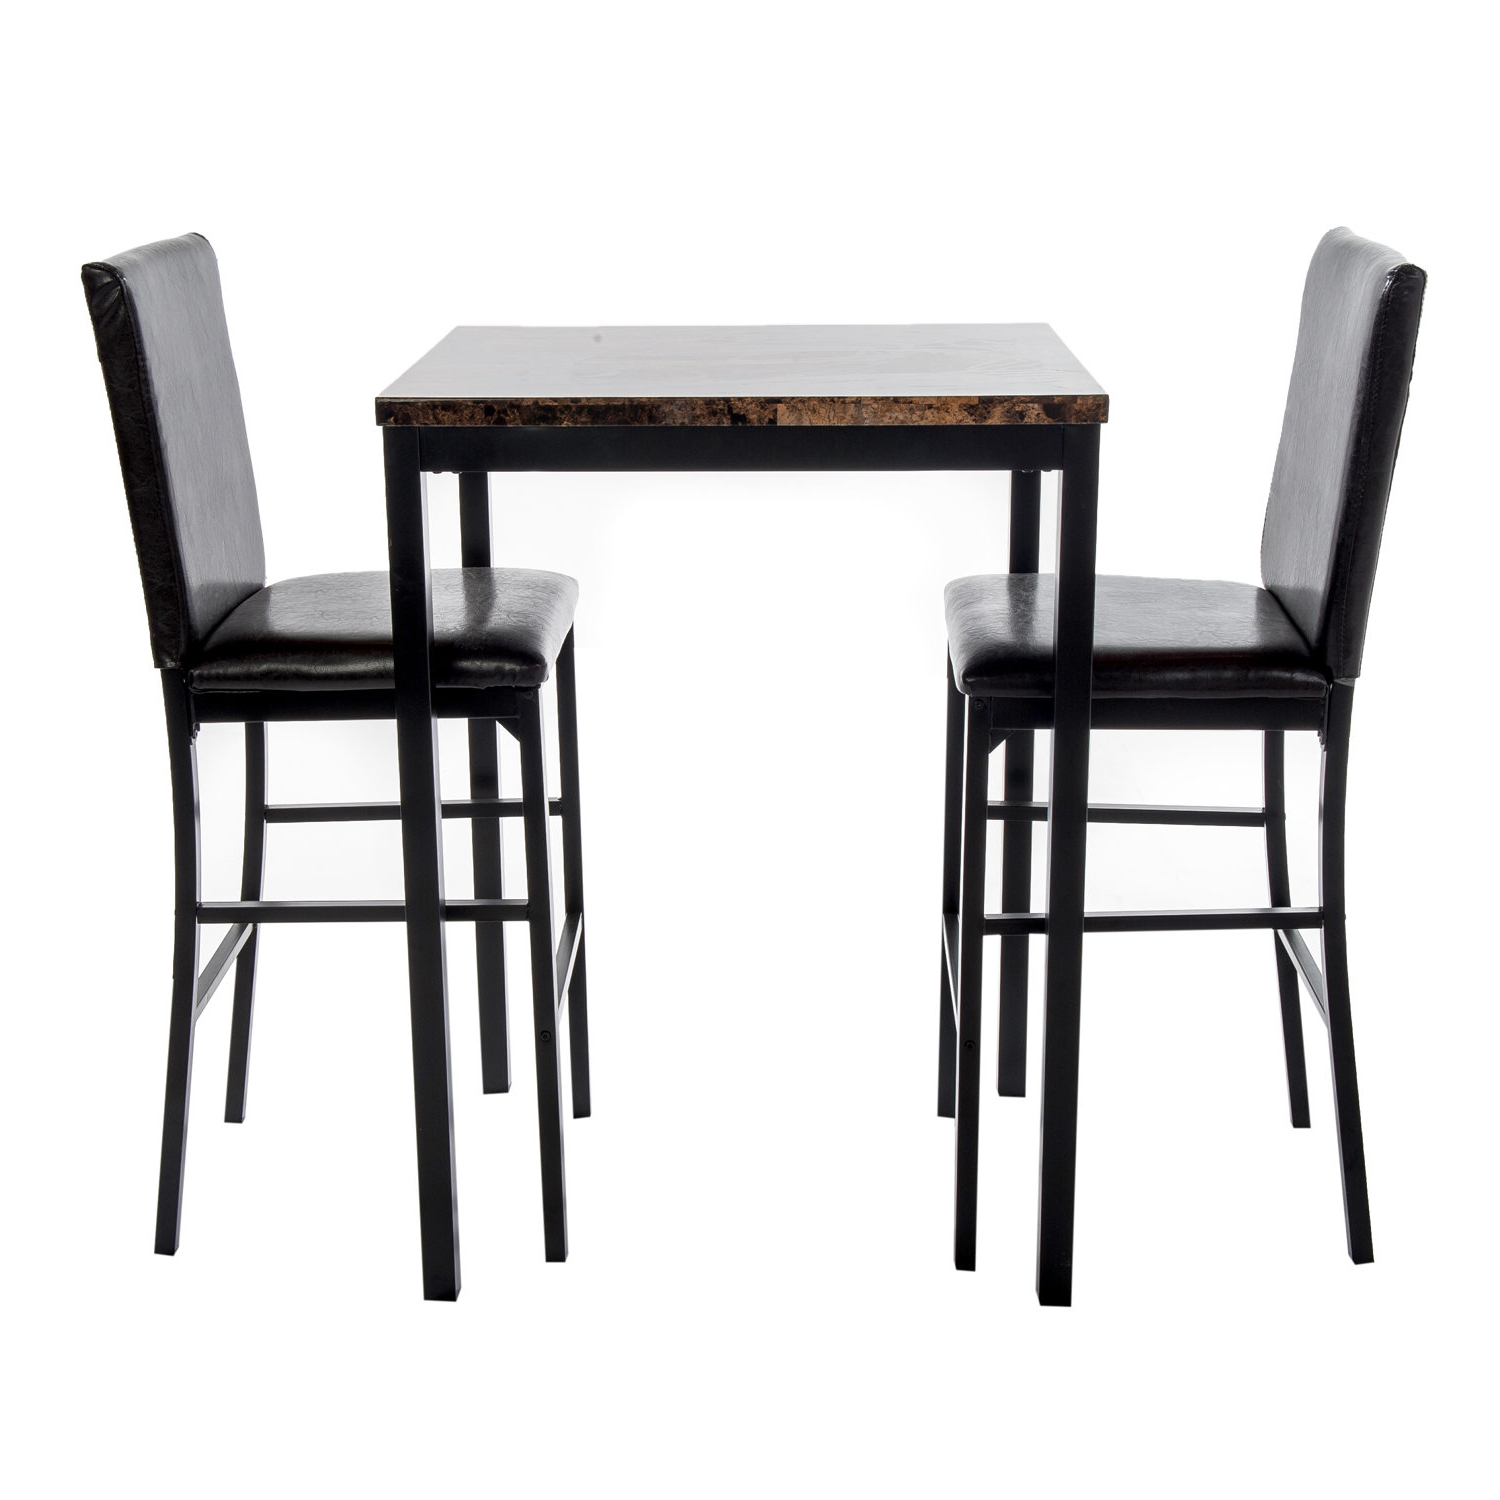 Della 3 Piece Bistro Pub Table Set In Preferred Anette 3 Piece Counter Height Dining Sets (View 4 of 20)